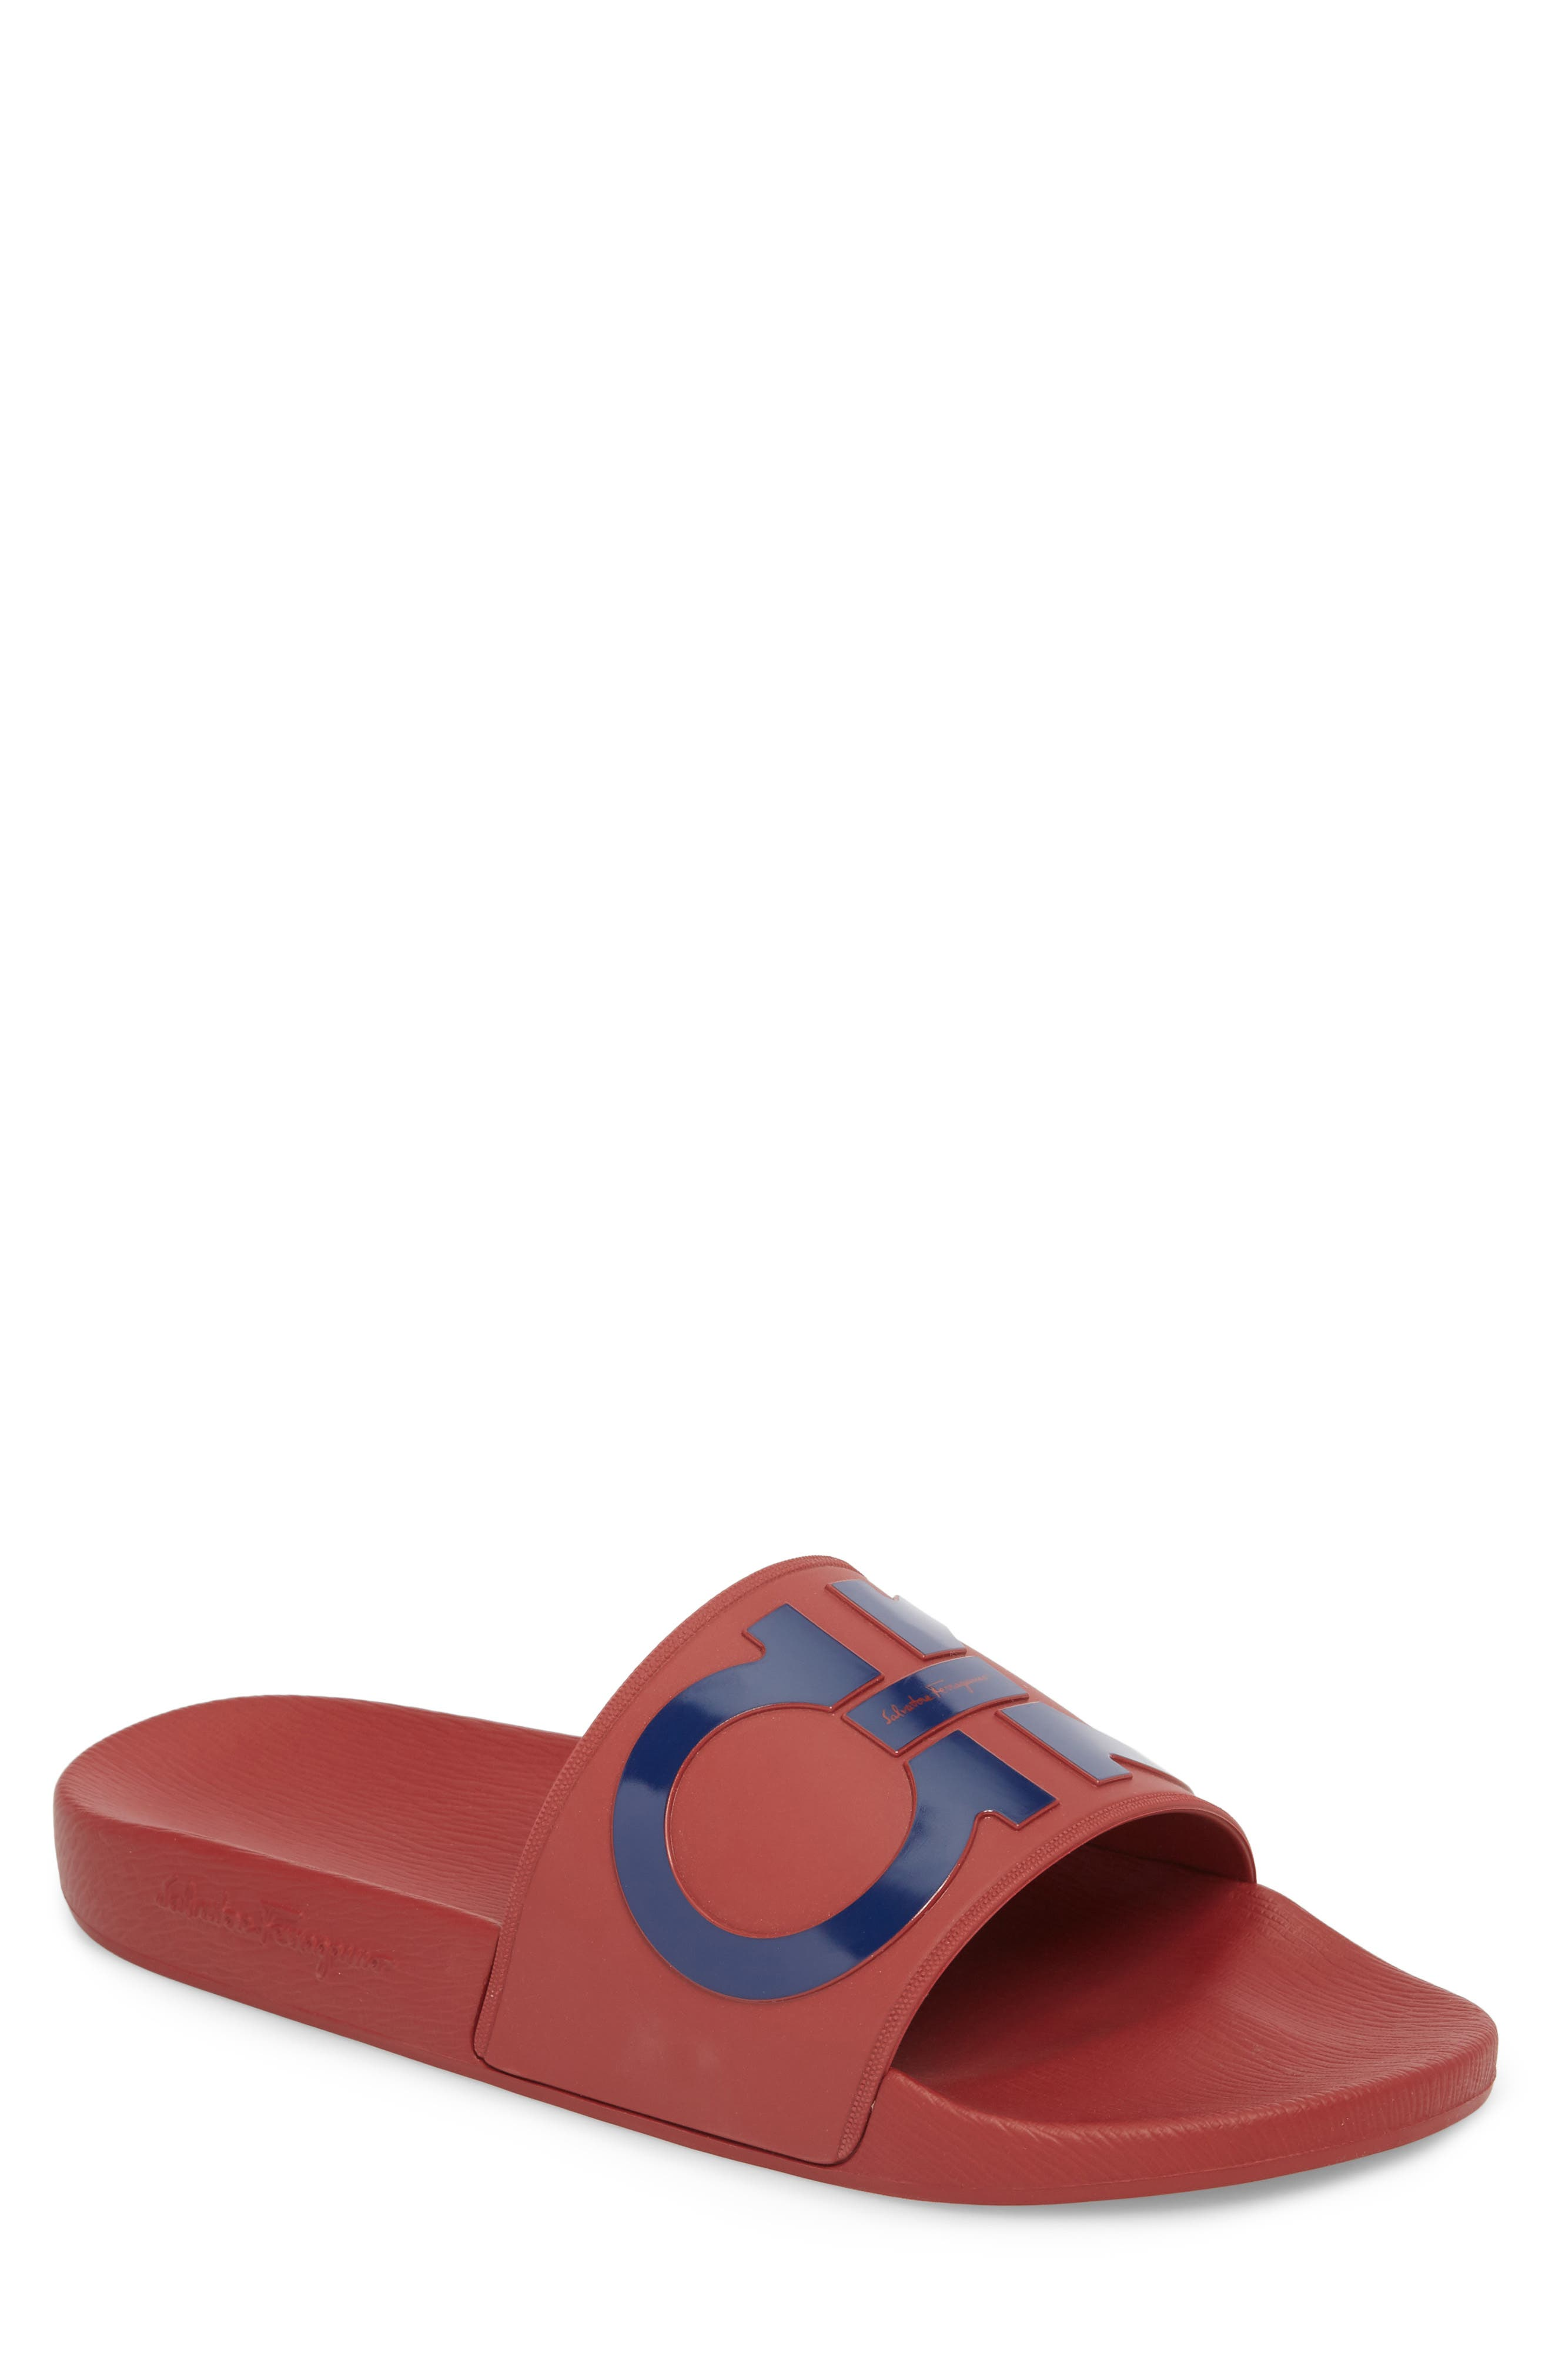 Groove Slide Sandal,                         Main,                         color, Rouge